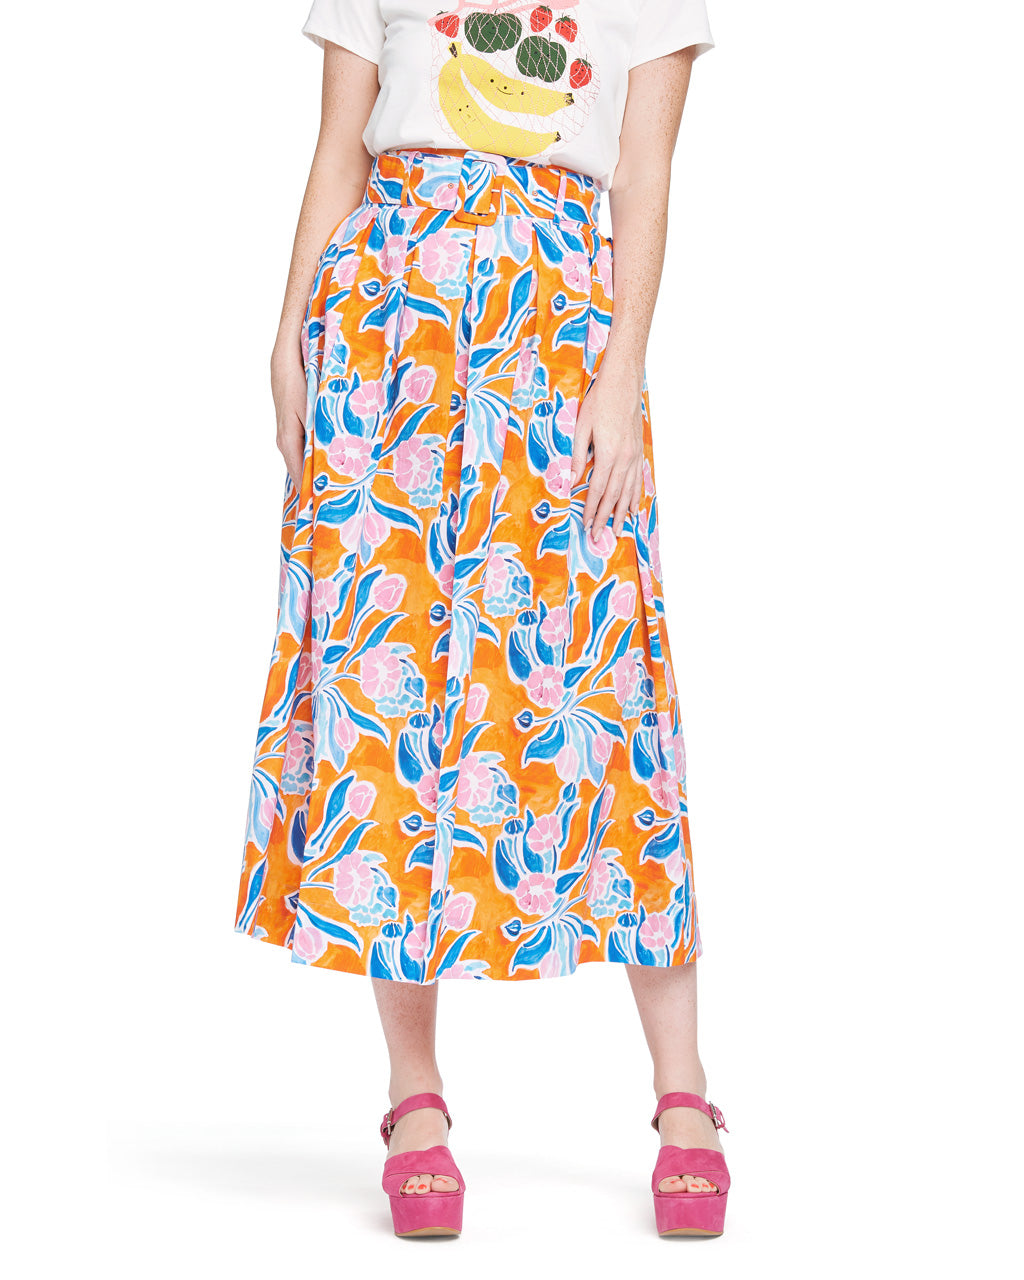 This Vinita Skirt comes in an abstract orange and blue pattern designed by Sisters Gulassa.